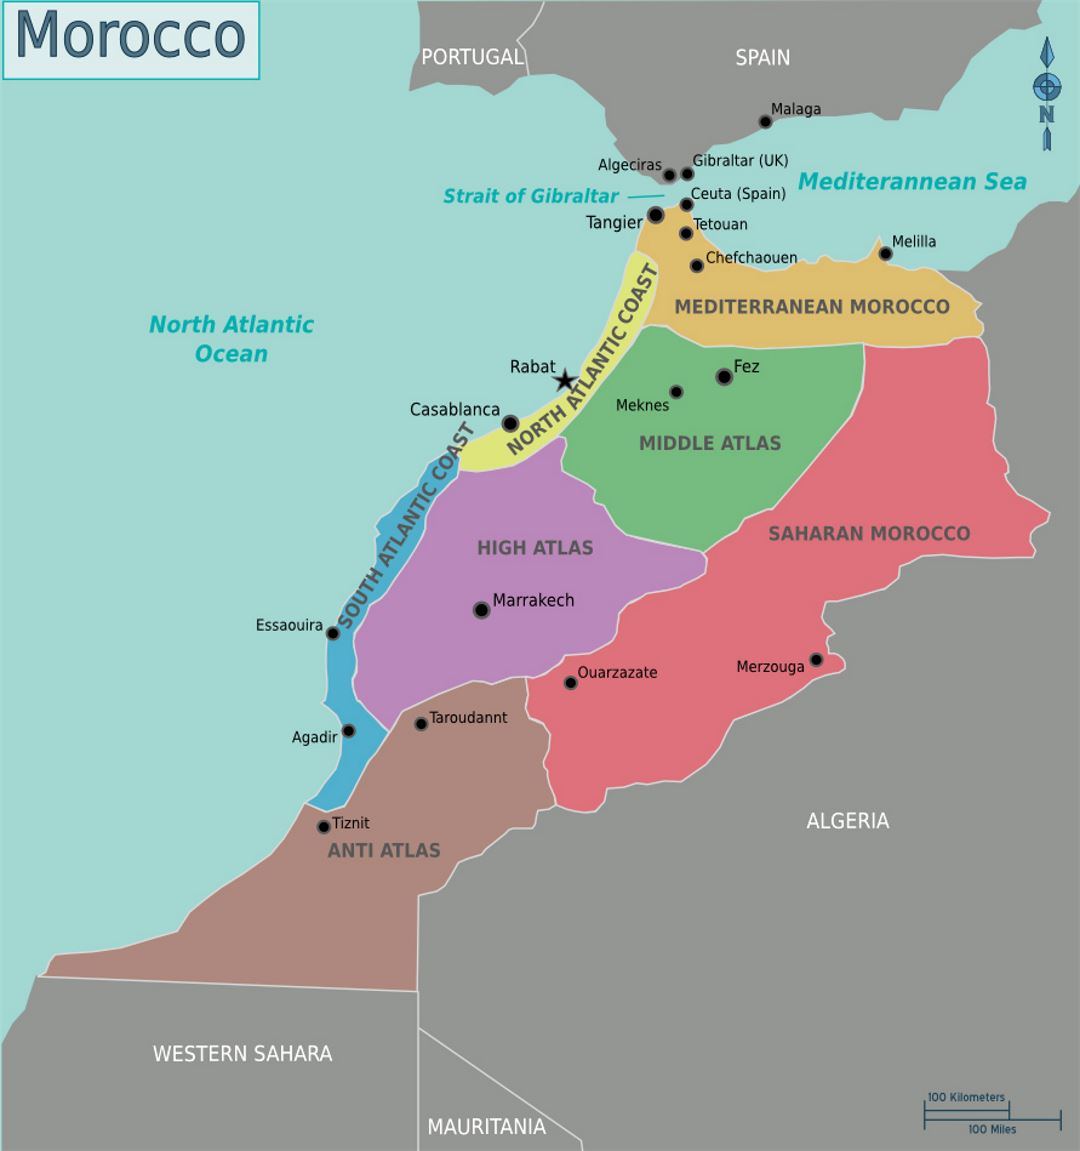 Map Of Spain Gibraltar And Morocco.Detailed Regions Map Of Morocco Morocco Africa Mapsland Maps